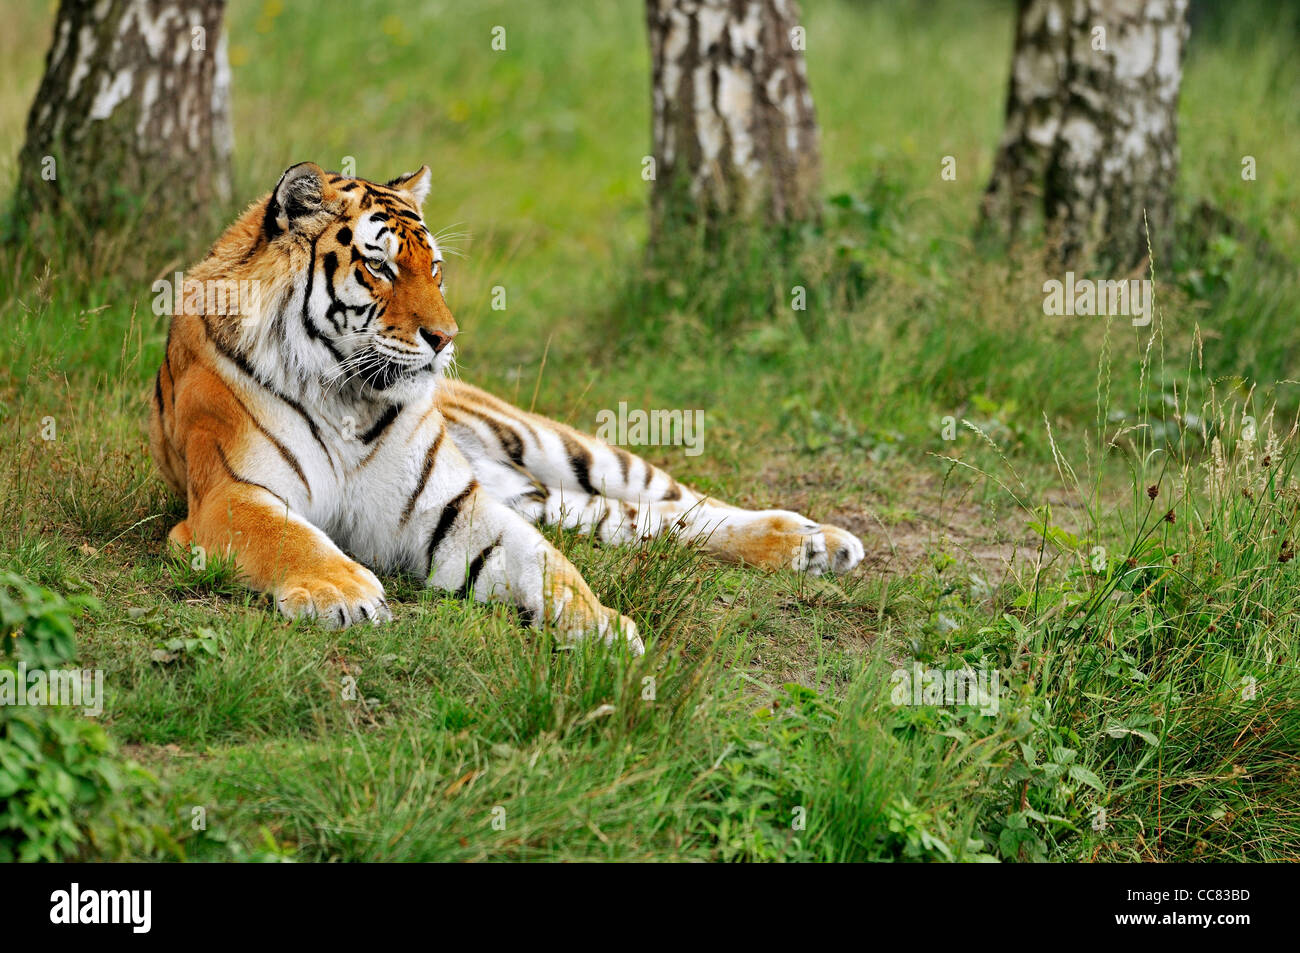 Siberian tiger / Amur tiger (Panthera tigris altaica) lying among trees, native to Russia and China - Stock Image